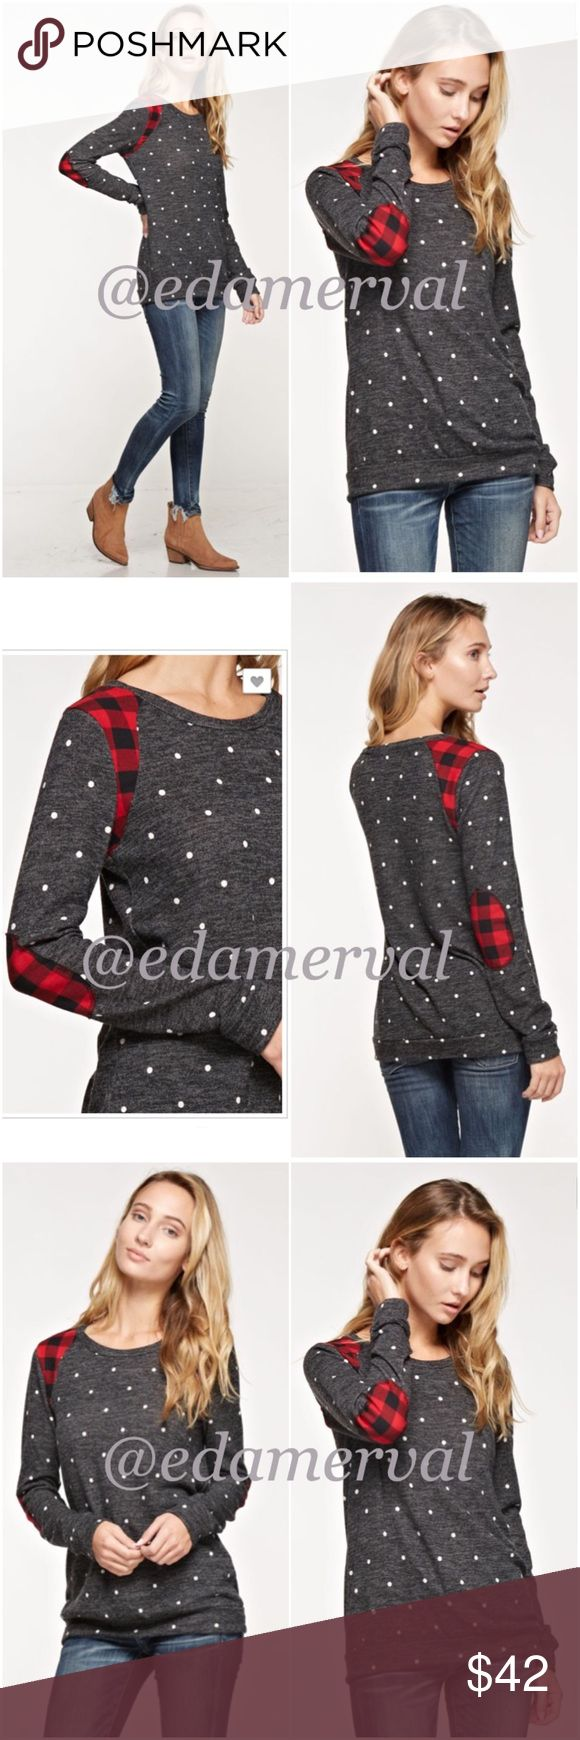 LISTING! NWT Charcoal Plaid Elbow Patch Top NWT Charcoal Polka Dot Plaid Elbow Patch Top. Cute buffalo plaid shoulder and elbow detailing! Charcoal knit base with white polka dots. French terry style knit, sleeves are fitted. Fabric is polyester/spandex blend. Fits true to size (if between sizes, size up), available in Small (0-4), Medium (6-8), Large (10-12). PRICE IS FIRM, but can discount in a bundle. Tops Tees - Long Sleeve